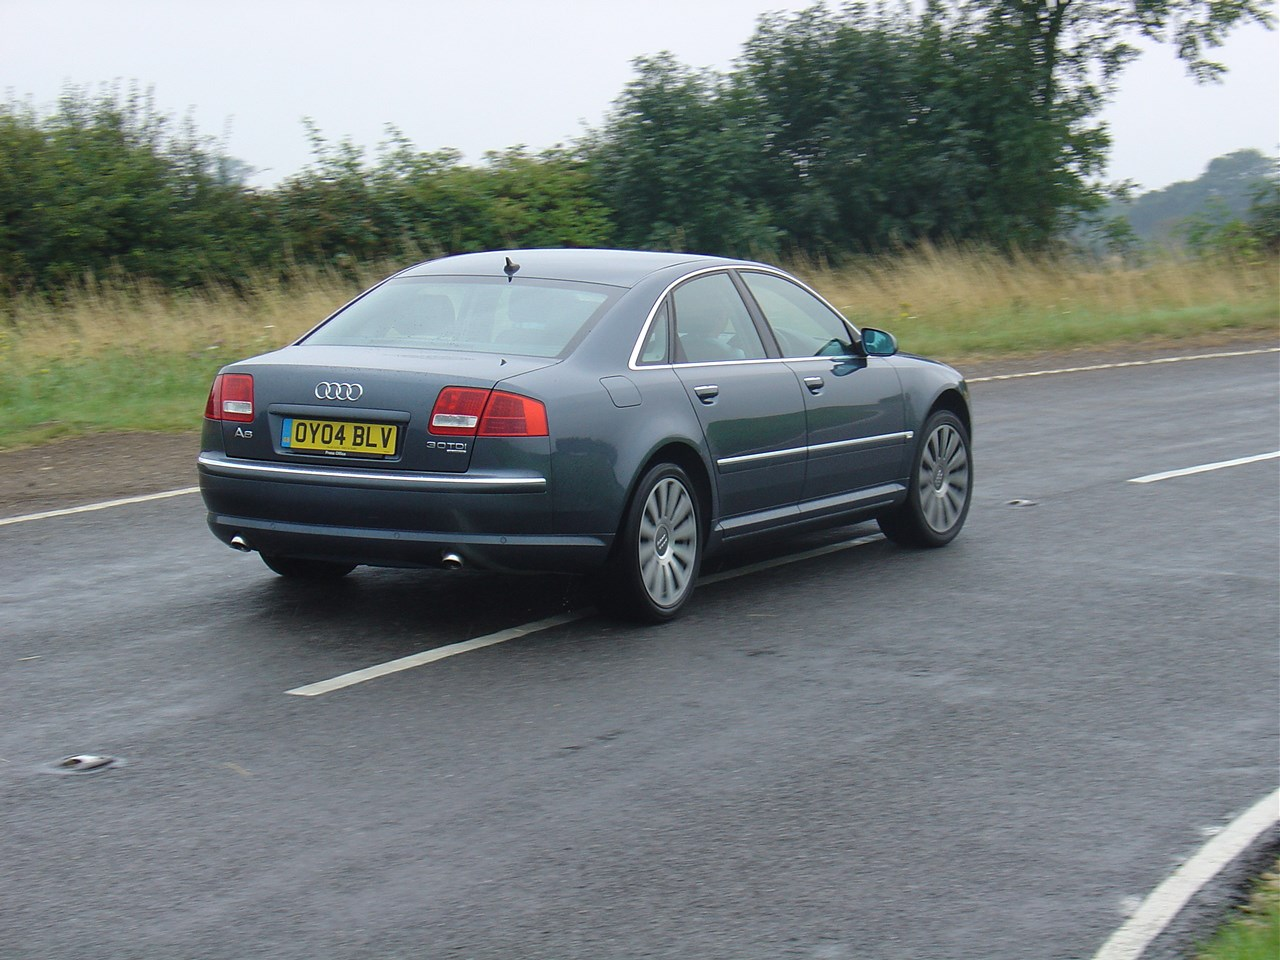 View all images of the audi a8 saloon 03 11